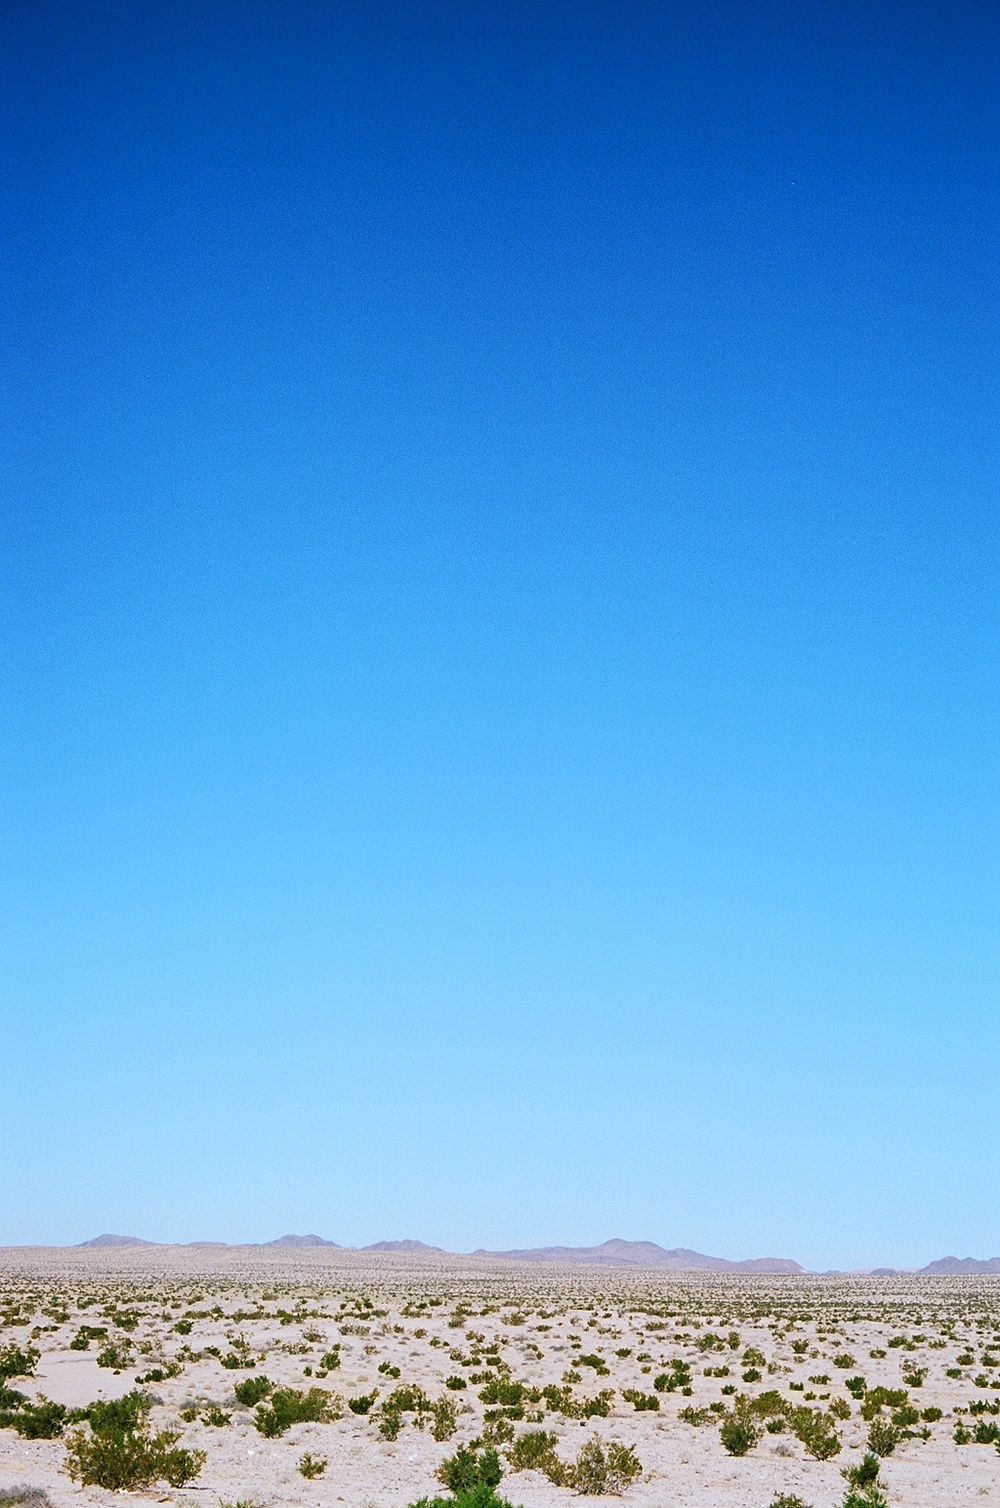 """Tranquility"" - Somewhere between Vegas and LA, 2014"